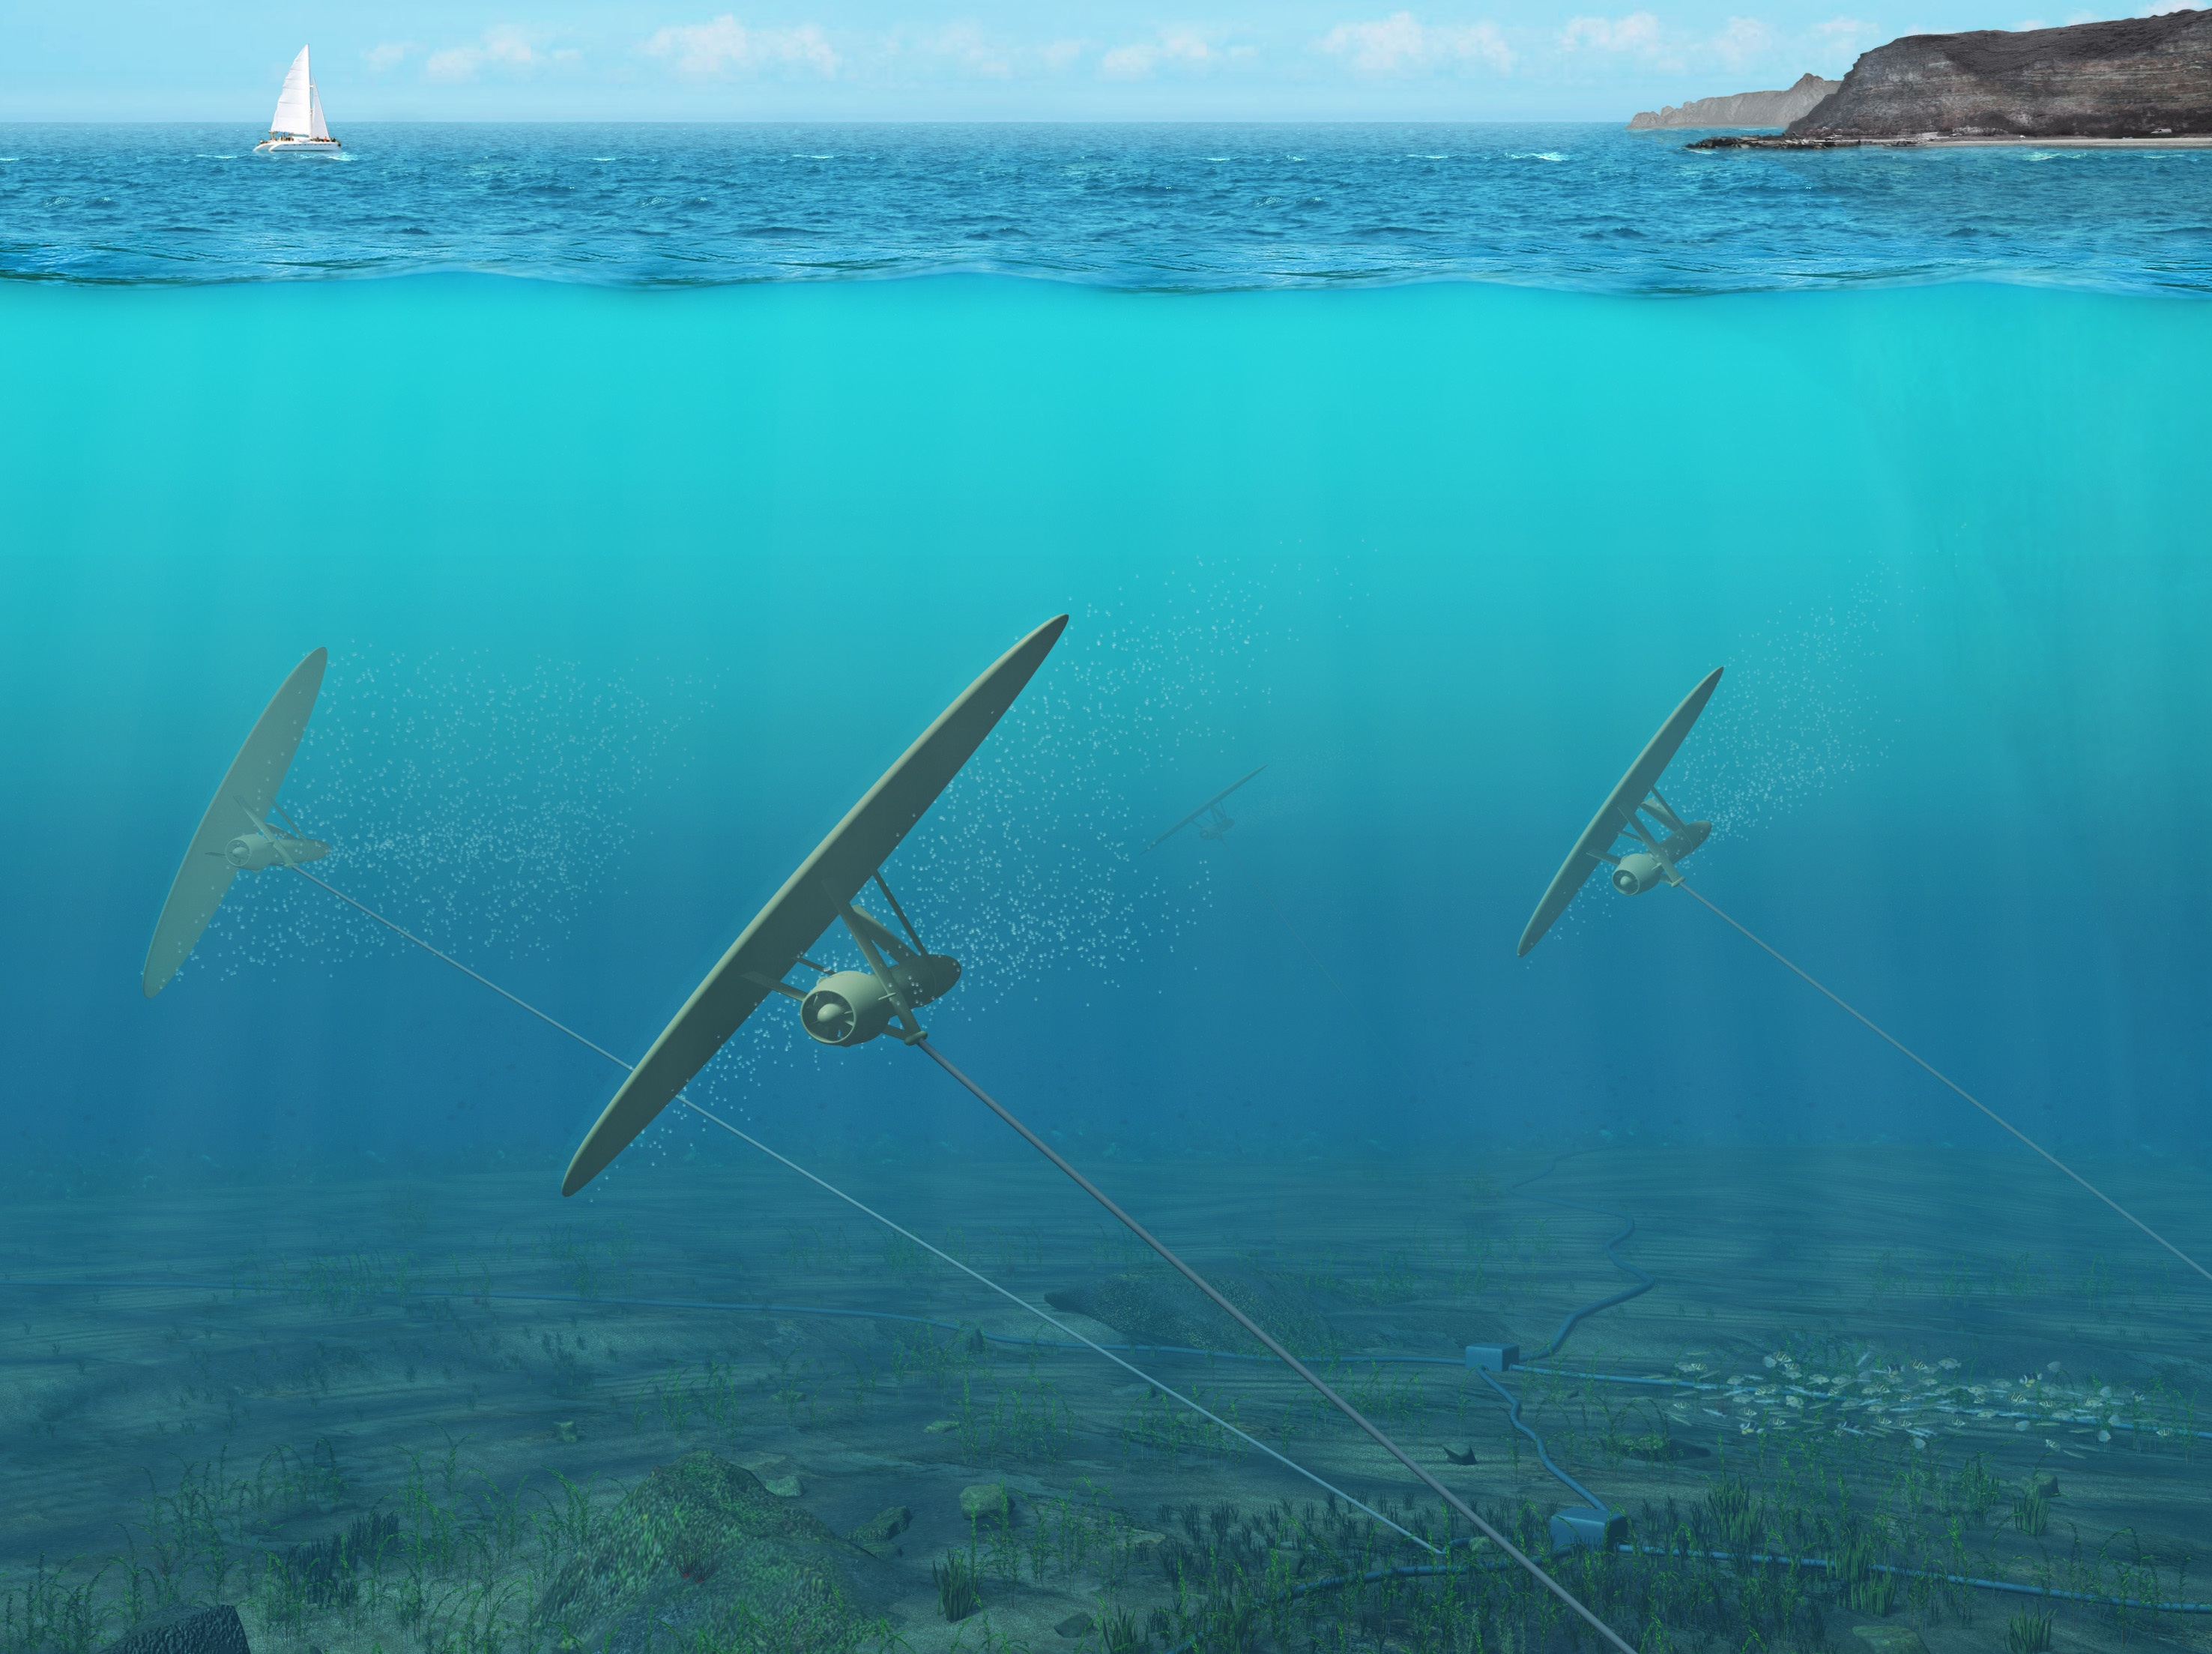 ... Ocean Currents to Create Clean Energy | Smart News | Smithsonian